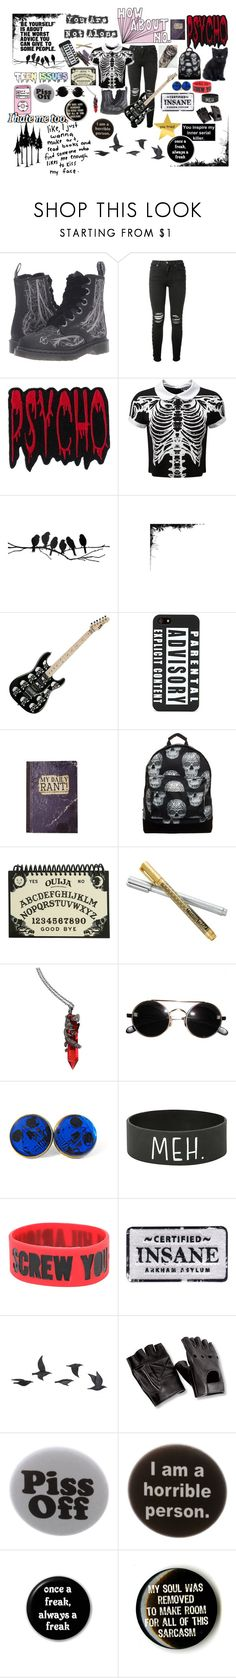 """There Are Some Things Wrong With Me"" by ghostgrl203 ❤ liked on Polyvore featuring Dr. Martens, AMIRI, Killstar, ferm LIVING, Mi-Pac, Hot Topic, Jayson Home, Humör and VesseL"